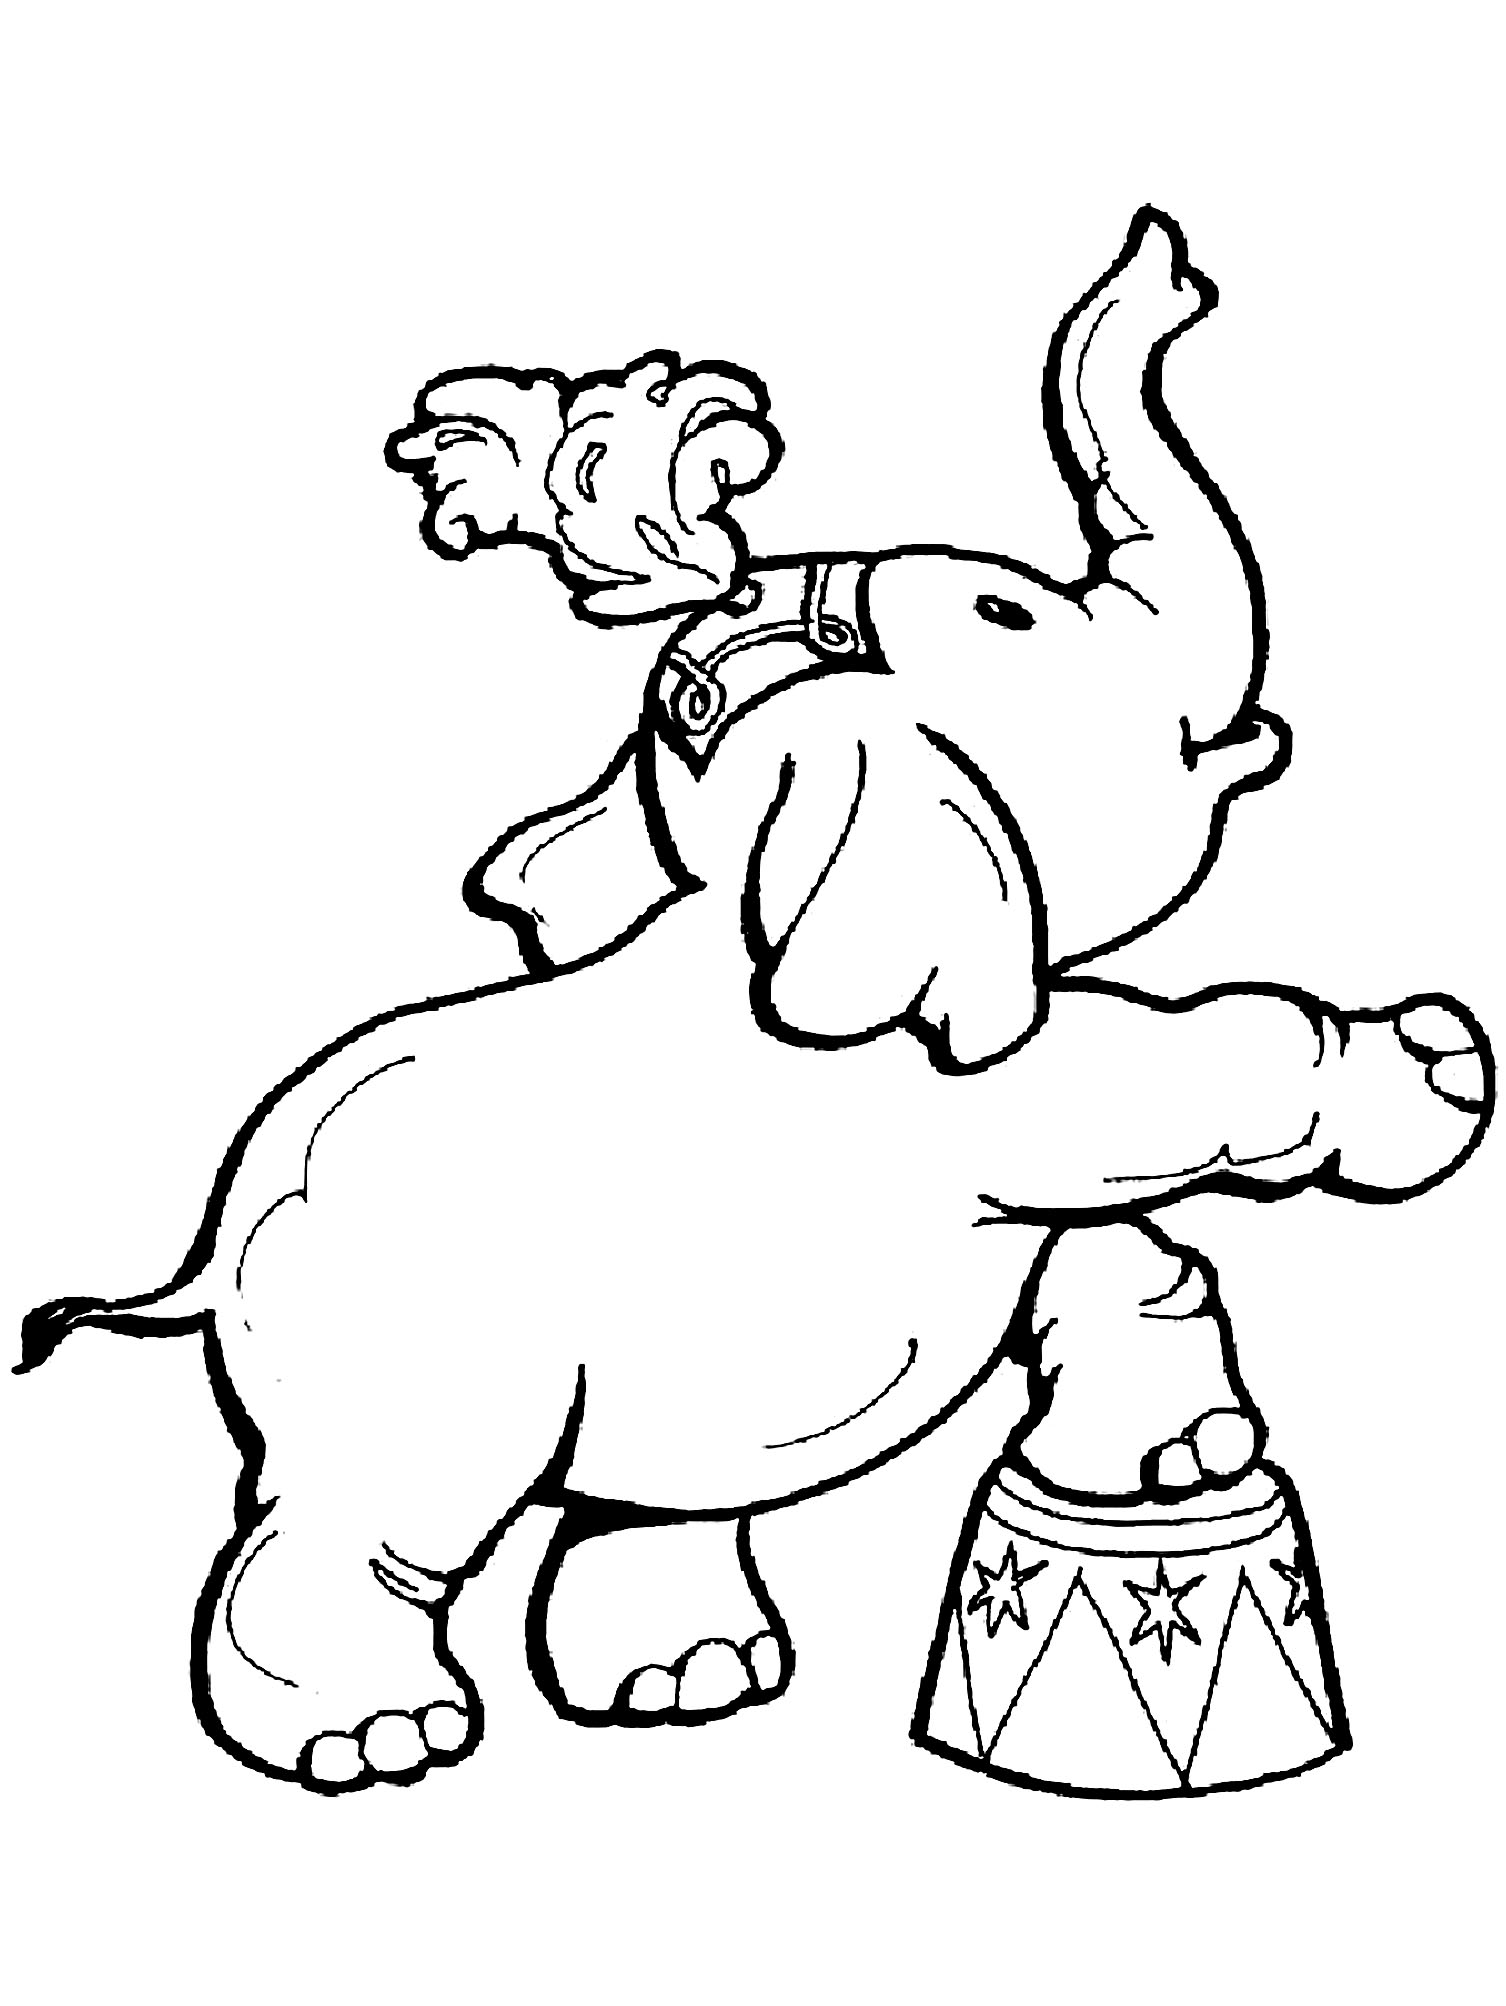 Circus for kids - Circus Kids Coloring Pages